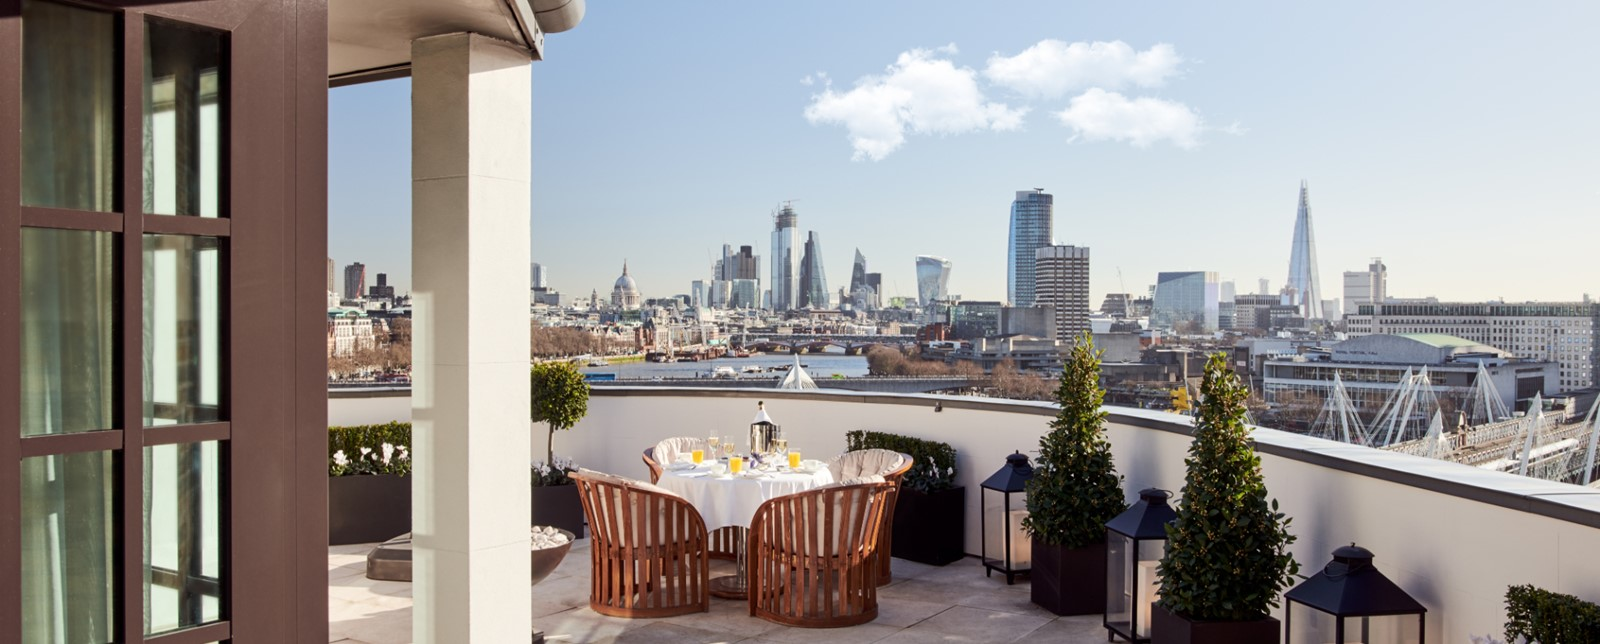 corinthia london royal penthouse terrace 1